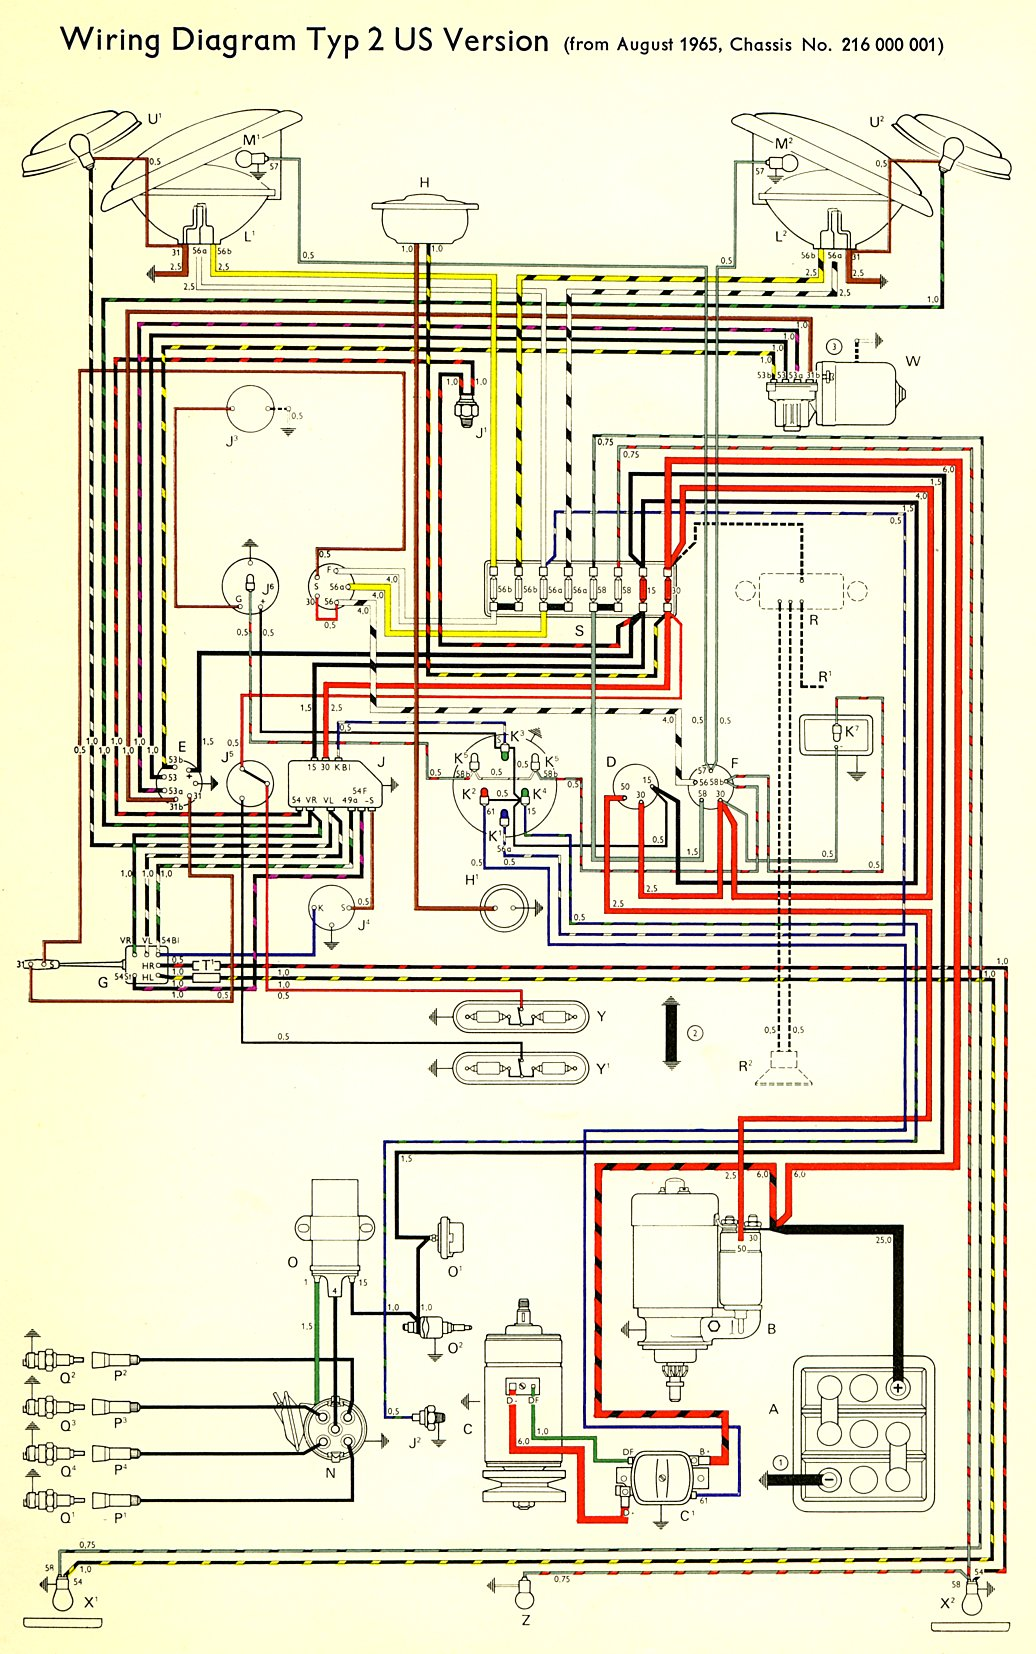 hight resolution of 1966 chevy c10 wiring harness free download diagram wiring library 1966 chevy c10 wiring harness free download diagram